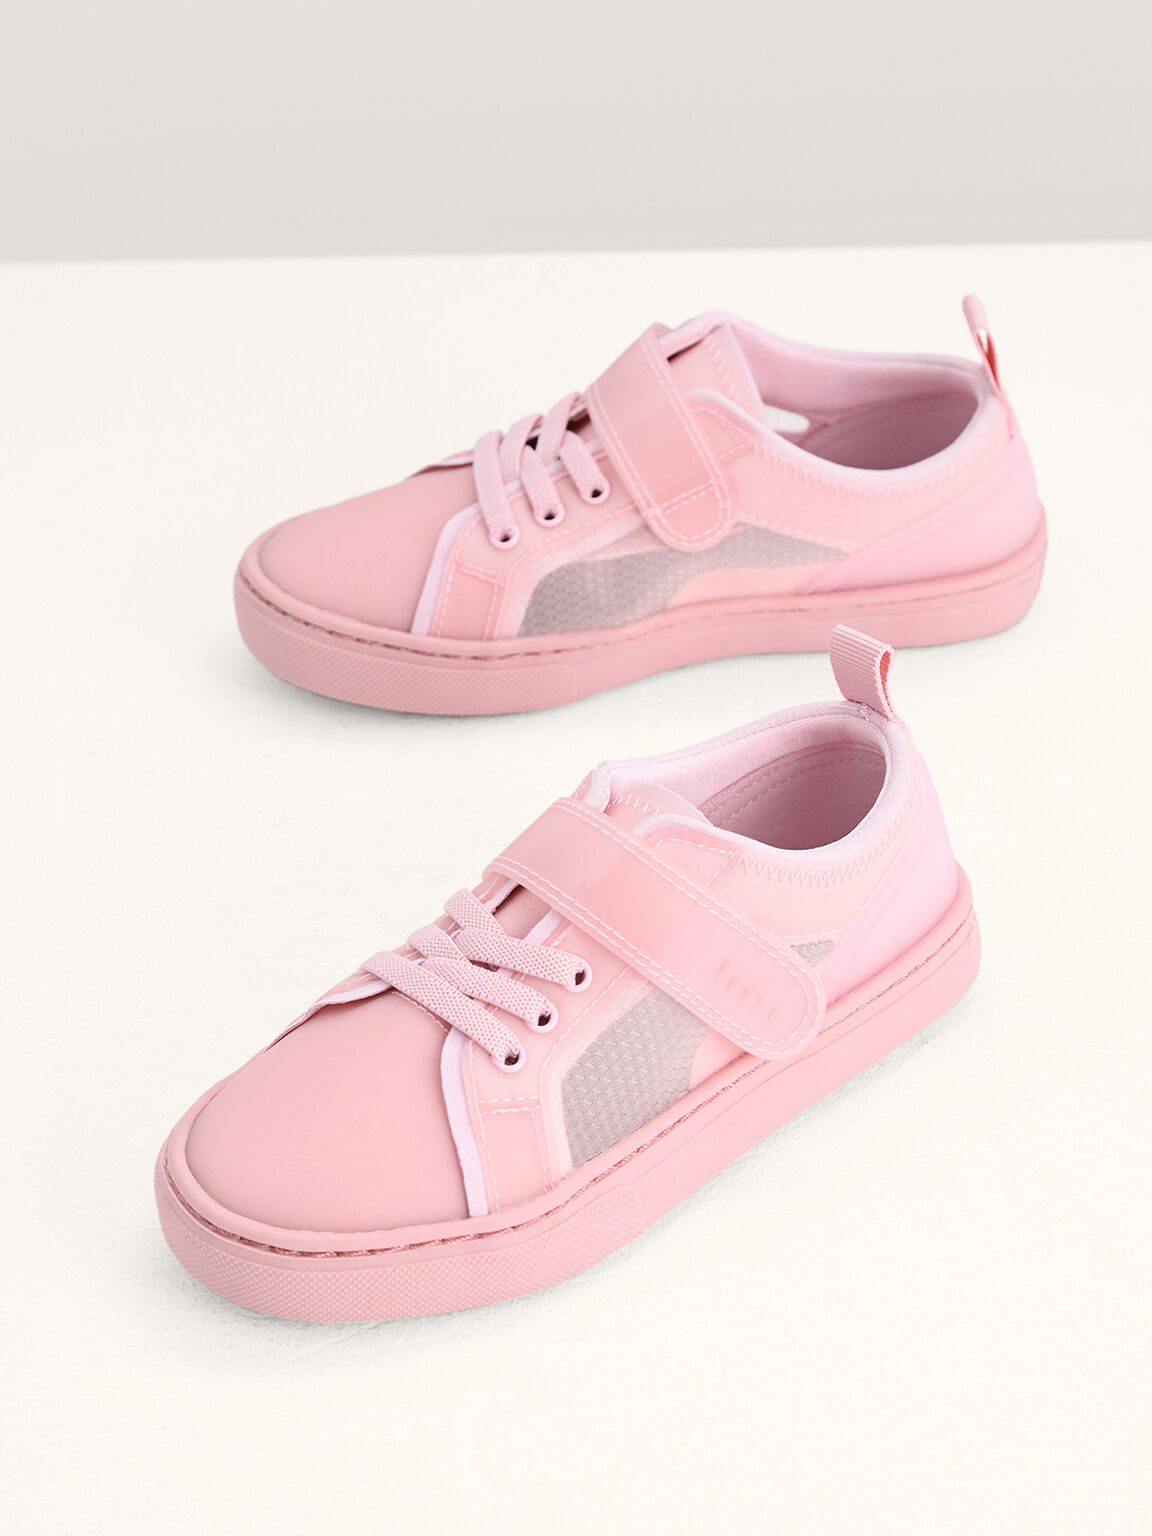 Monochrome Sneakers, Light Pink, hi-res